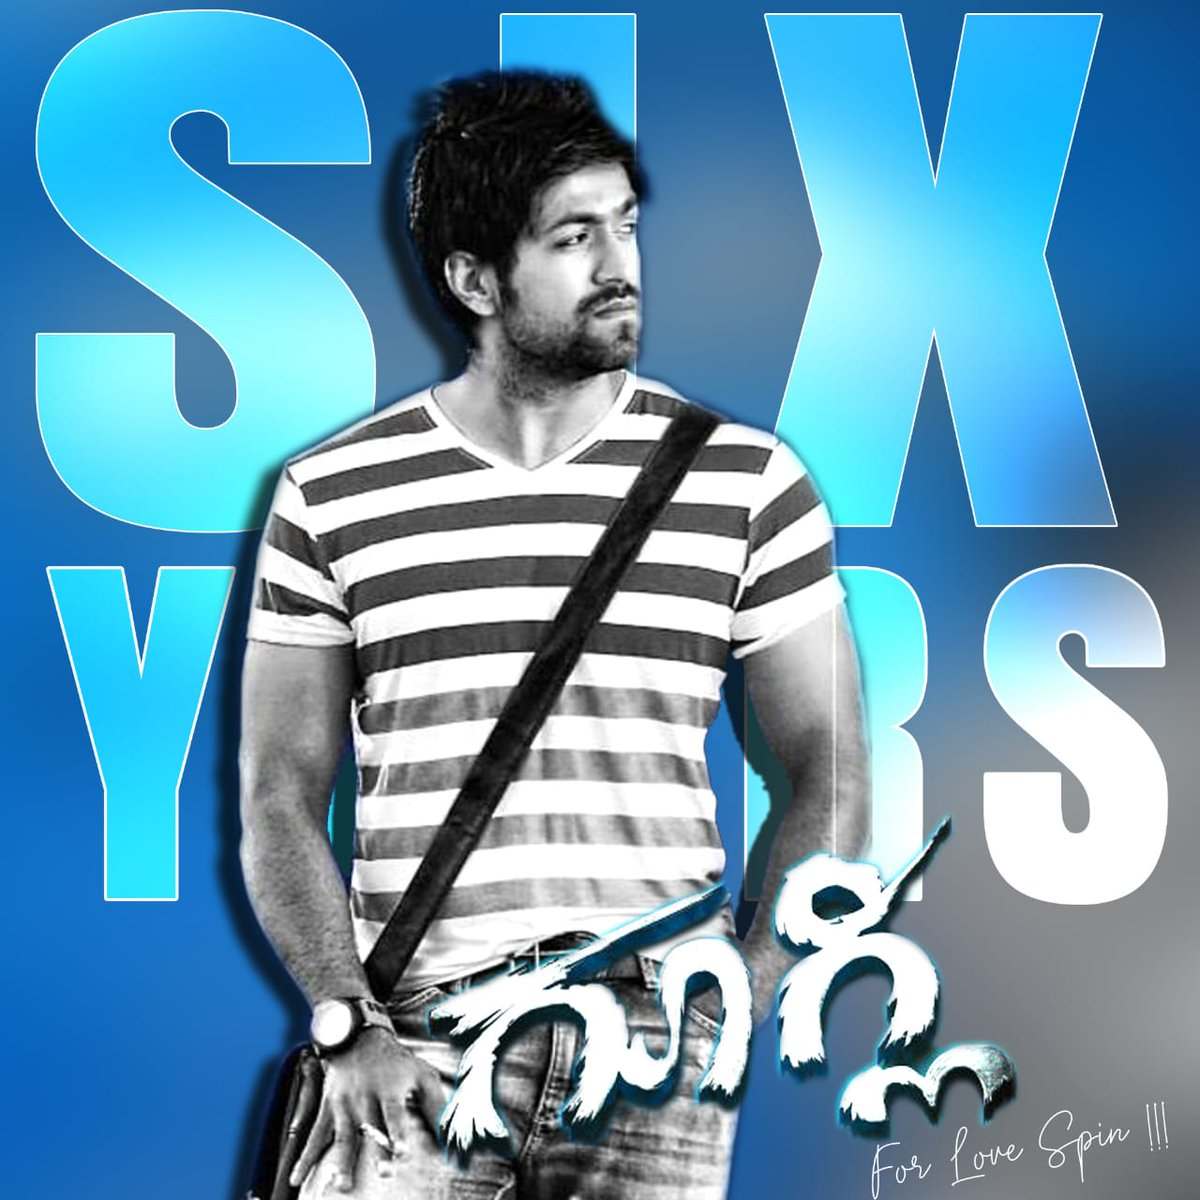 #6YearsForBBGoogly